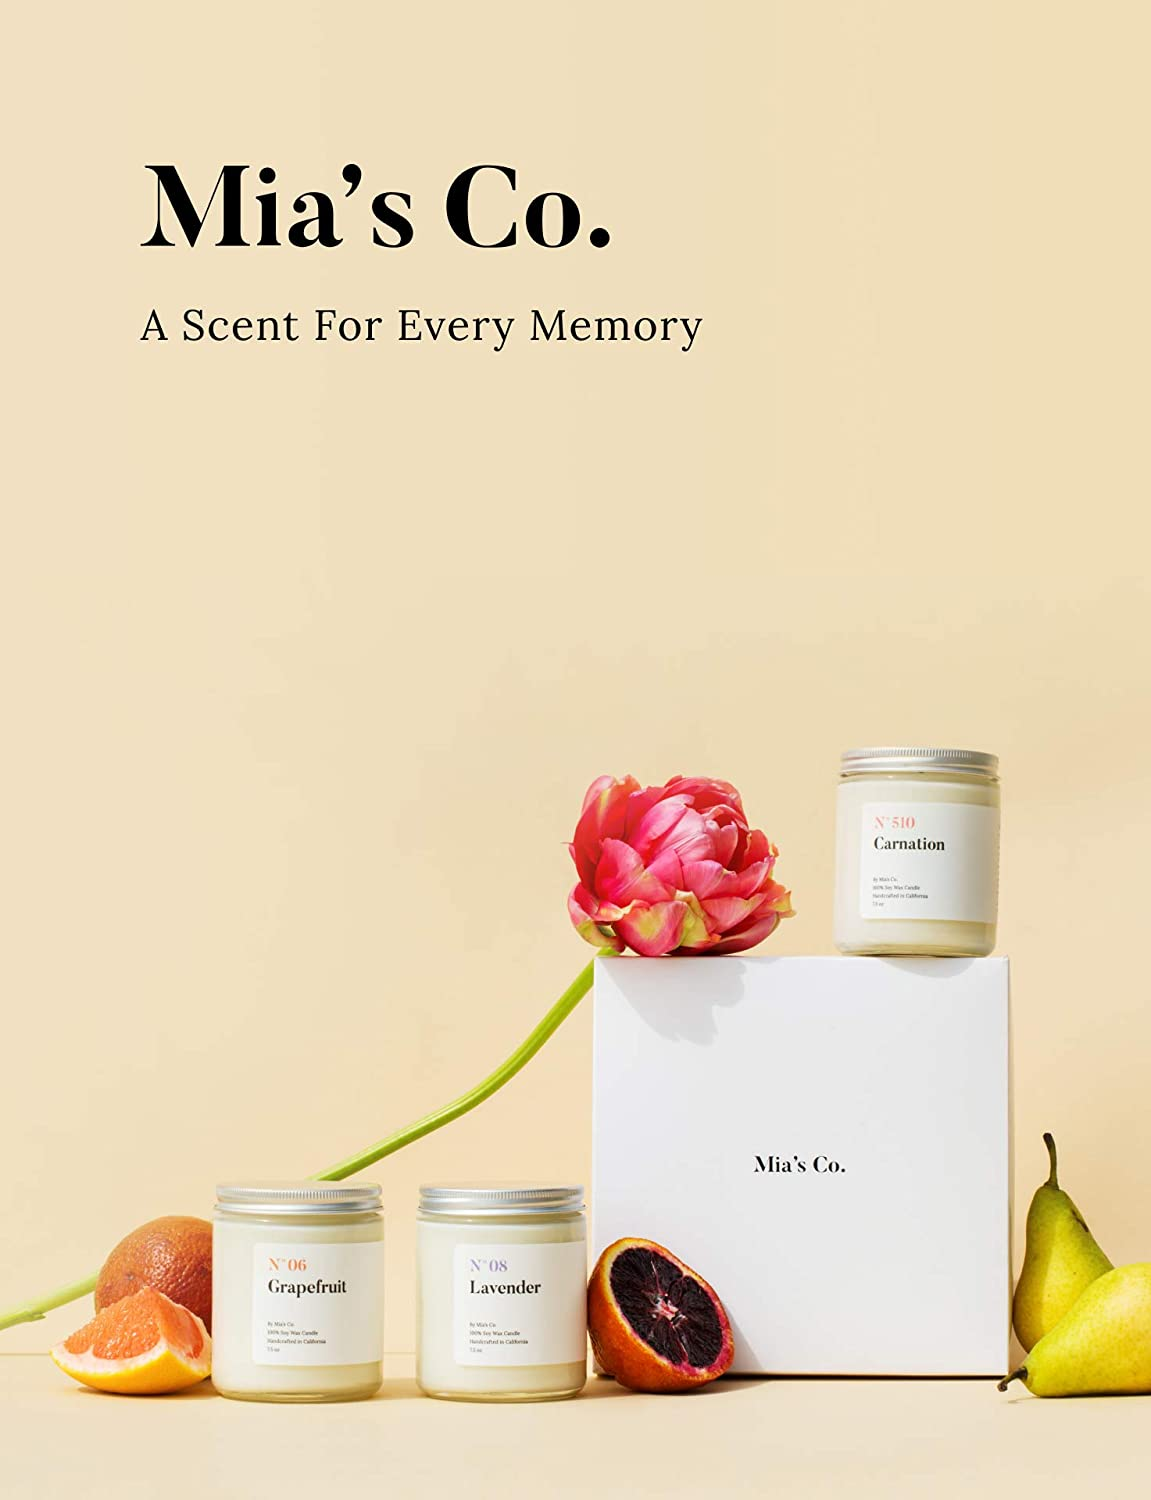 Mias Co Long Lasting Burning for Stress Relief 7.5oz Handcrafted in USA Great Gifts for Her Scented Candles for Home N/°05 Bamboo Highly Scented Luxury Soy Wax